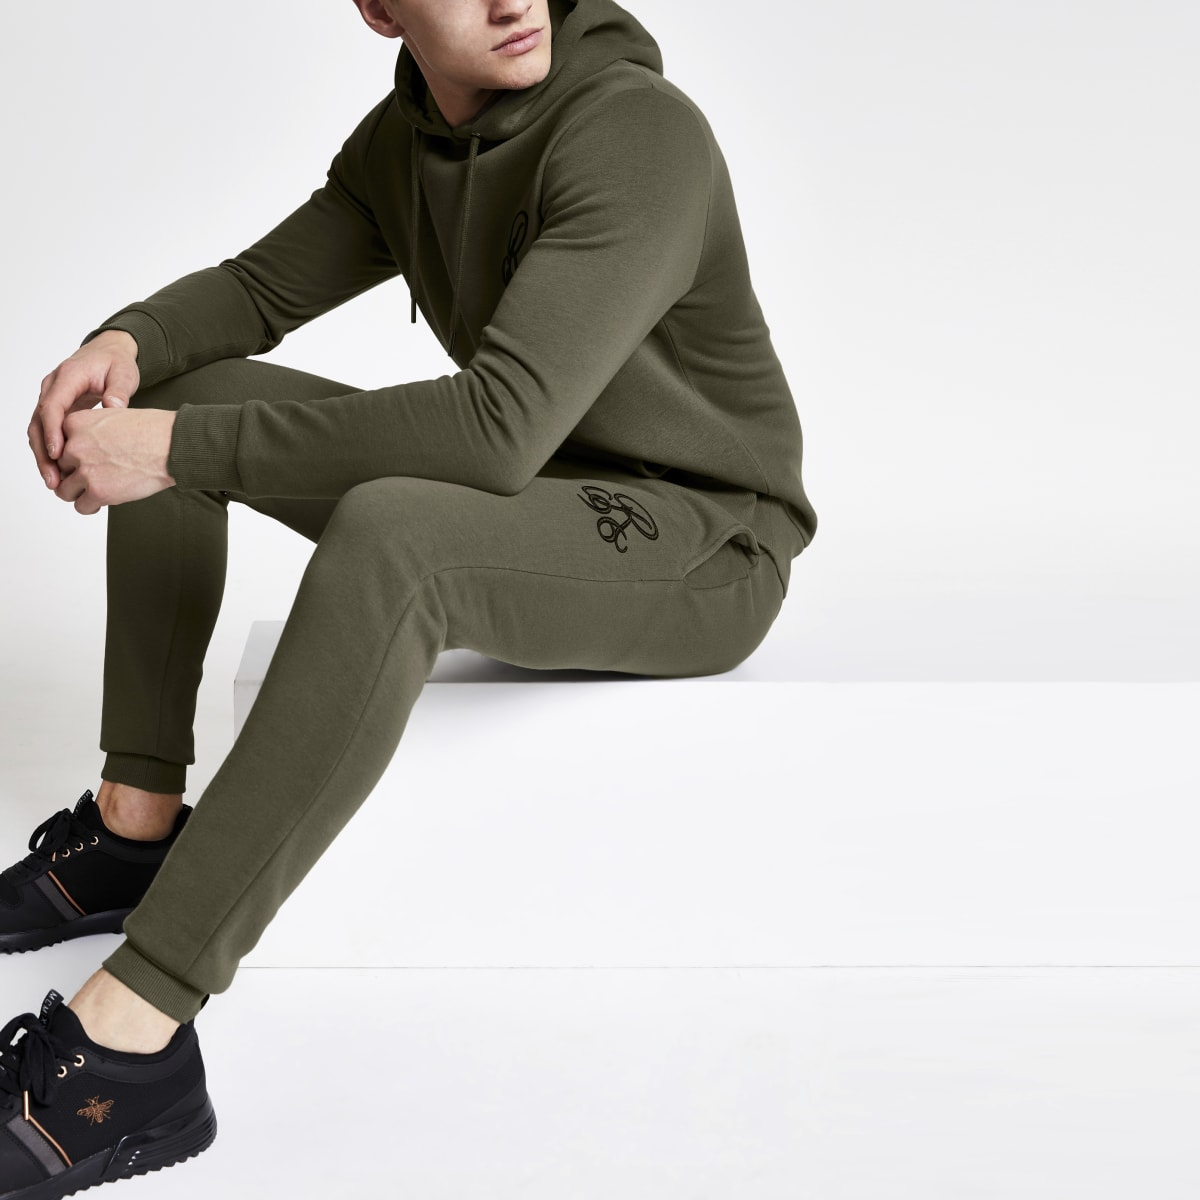 R96 khaki muscle fit joggers